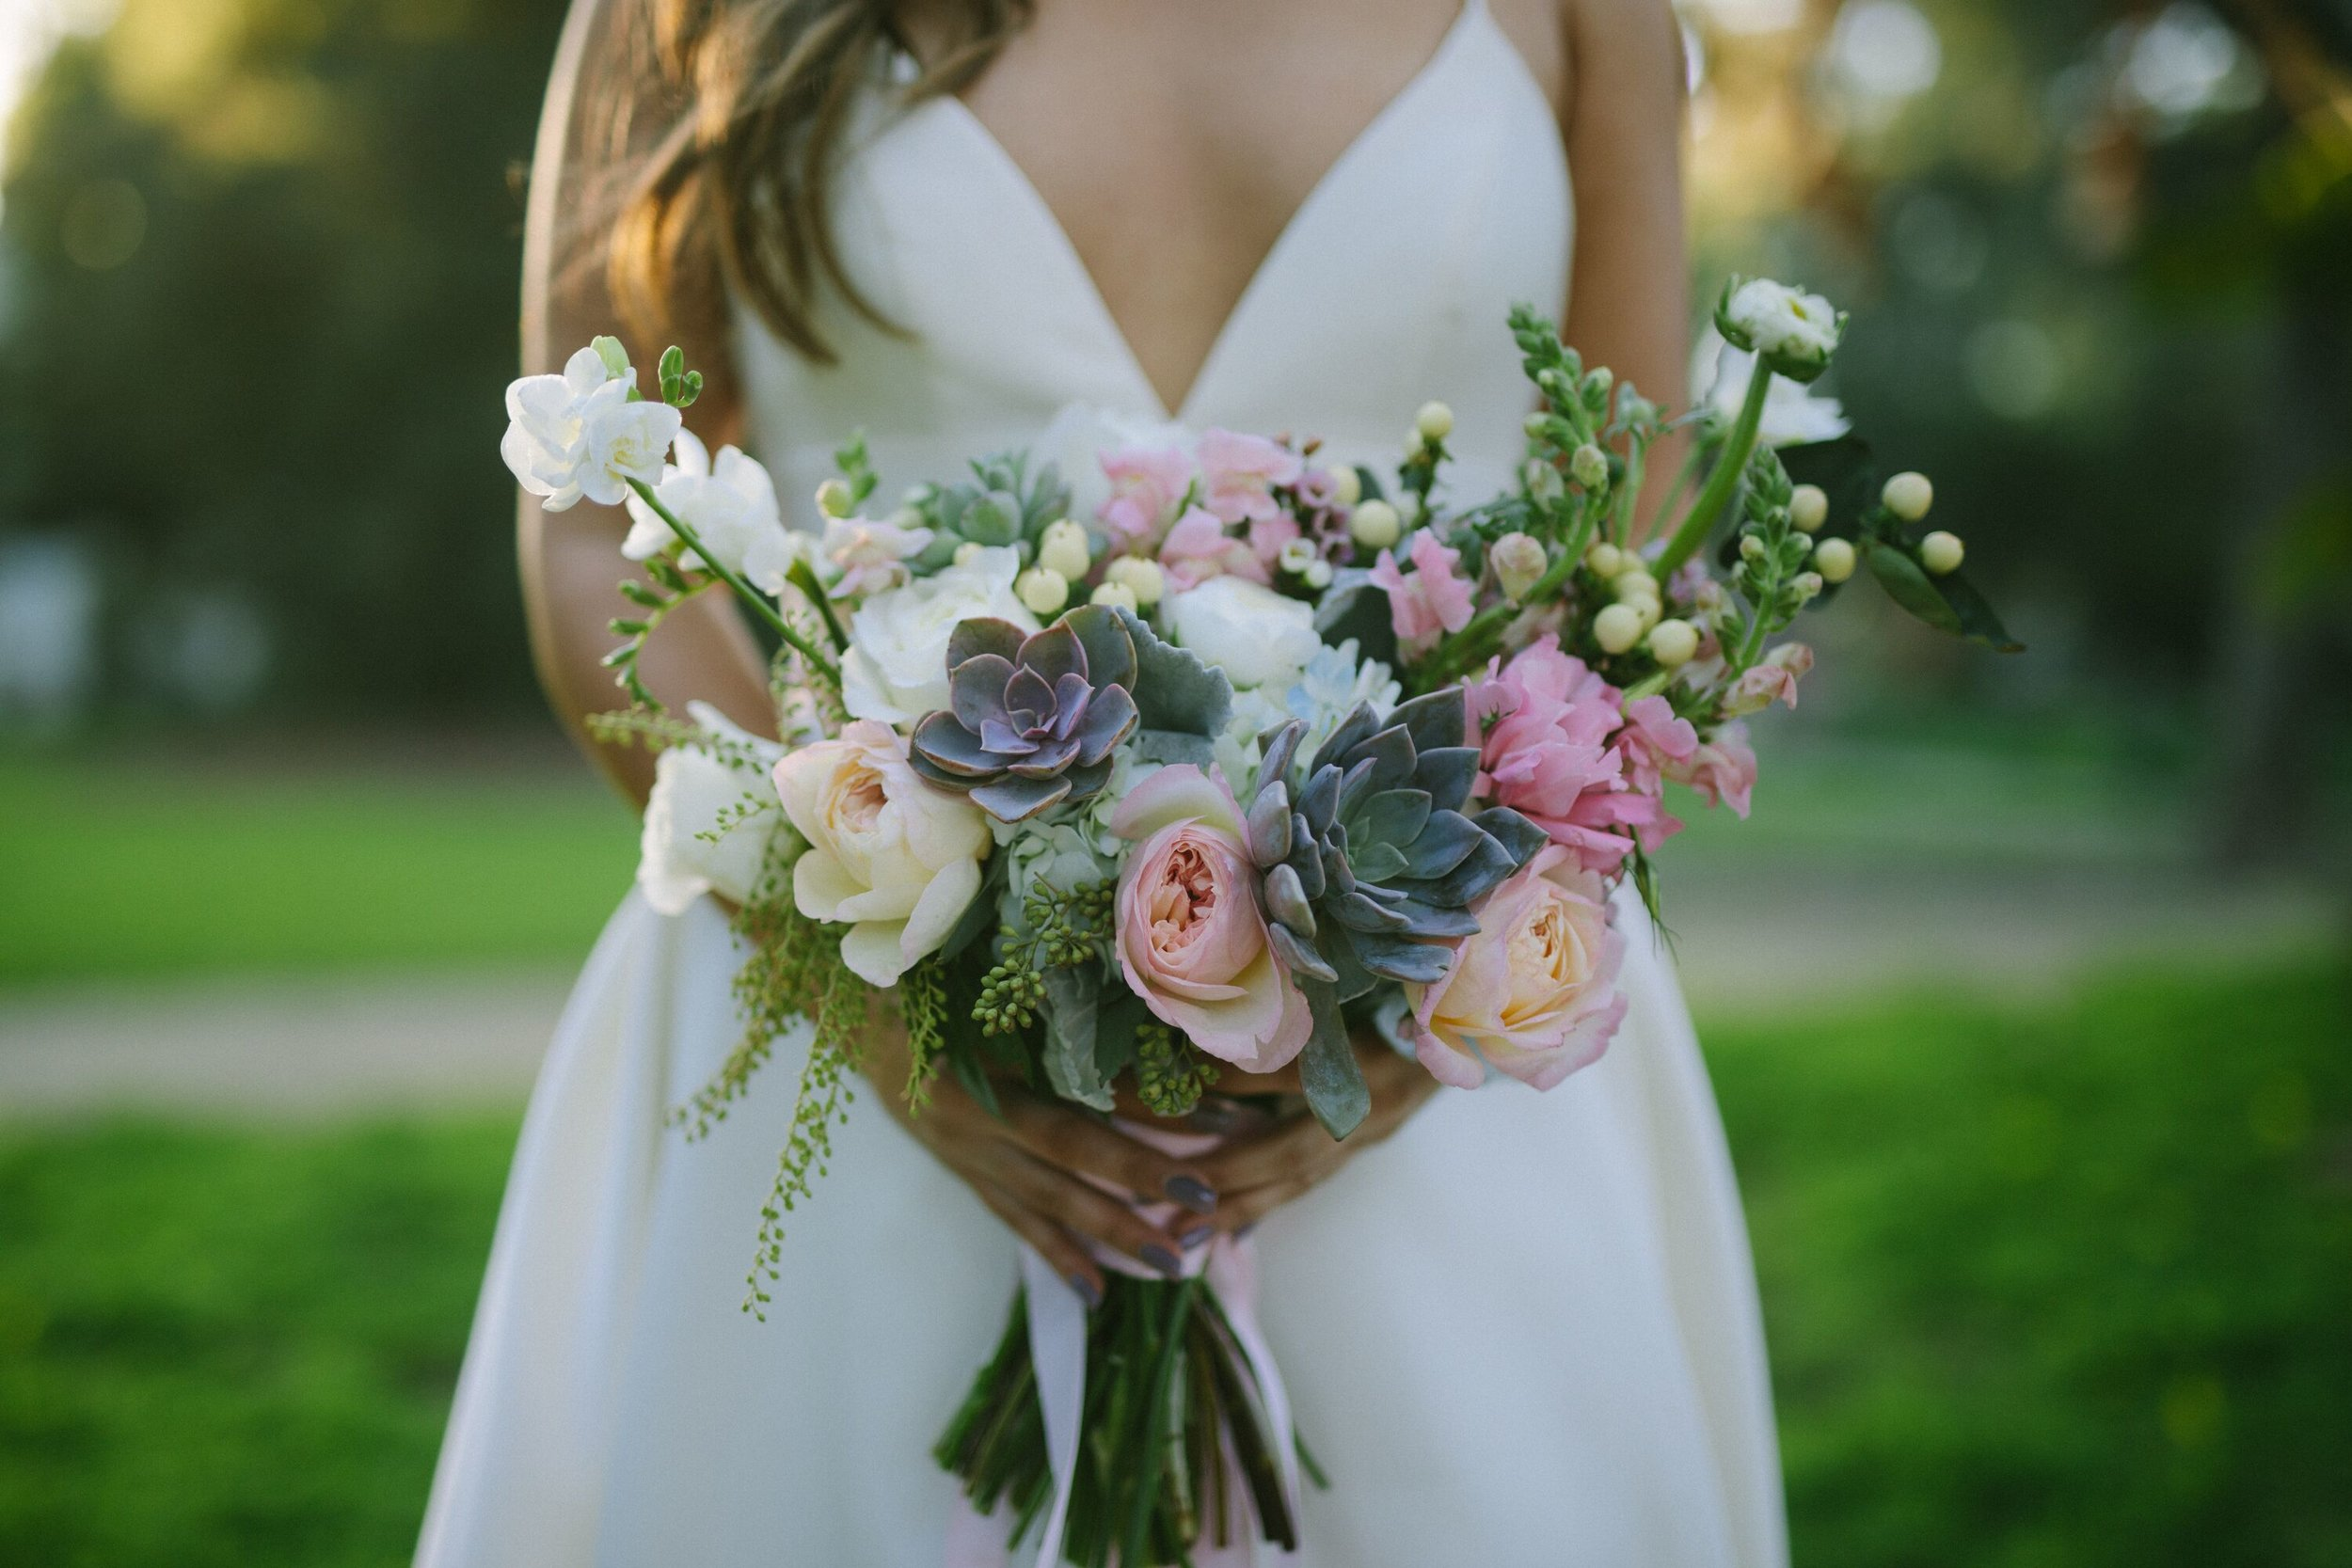 www.santabarbarawedding.com | Photographer: Patrick Ang of Forever Rooted Films | Venue: Rancho La Patera & Stow House | Wedding Planner: Elyse Rowen of Elyse Events | Bride Holding Bouquet